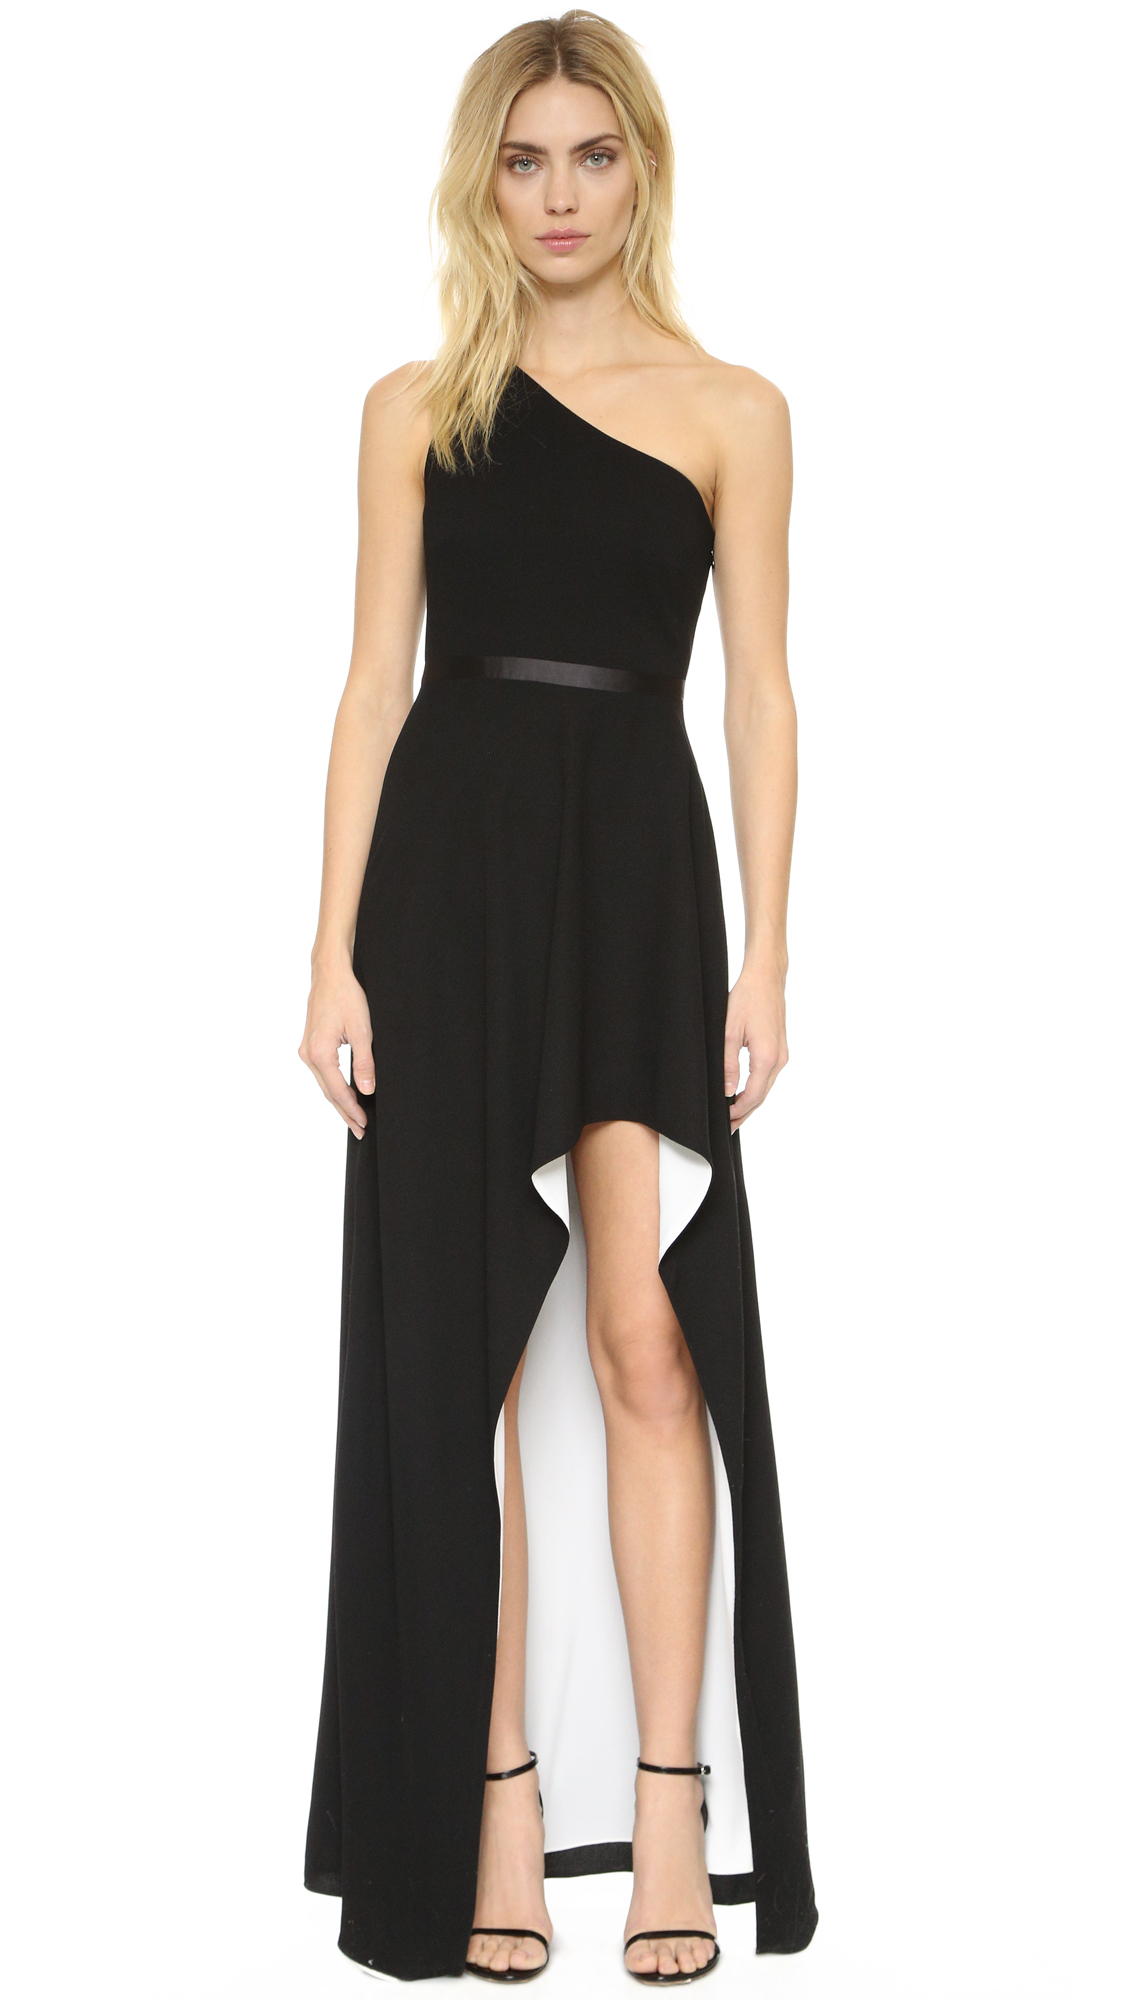 0b1fb529530c Gallery. Previously sold at: Shopbop · Women's High Low Dresses